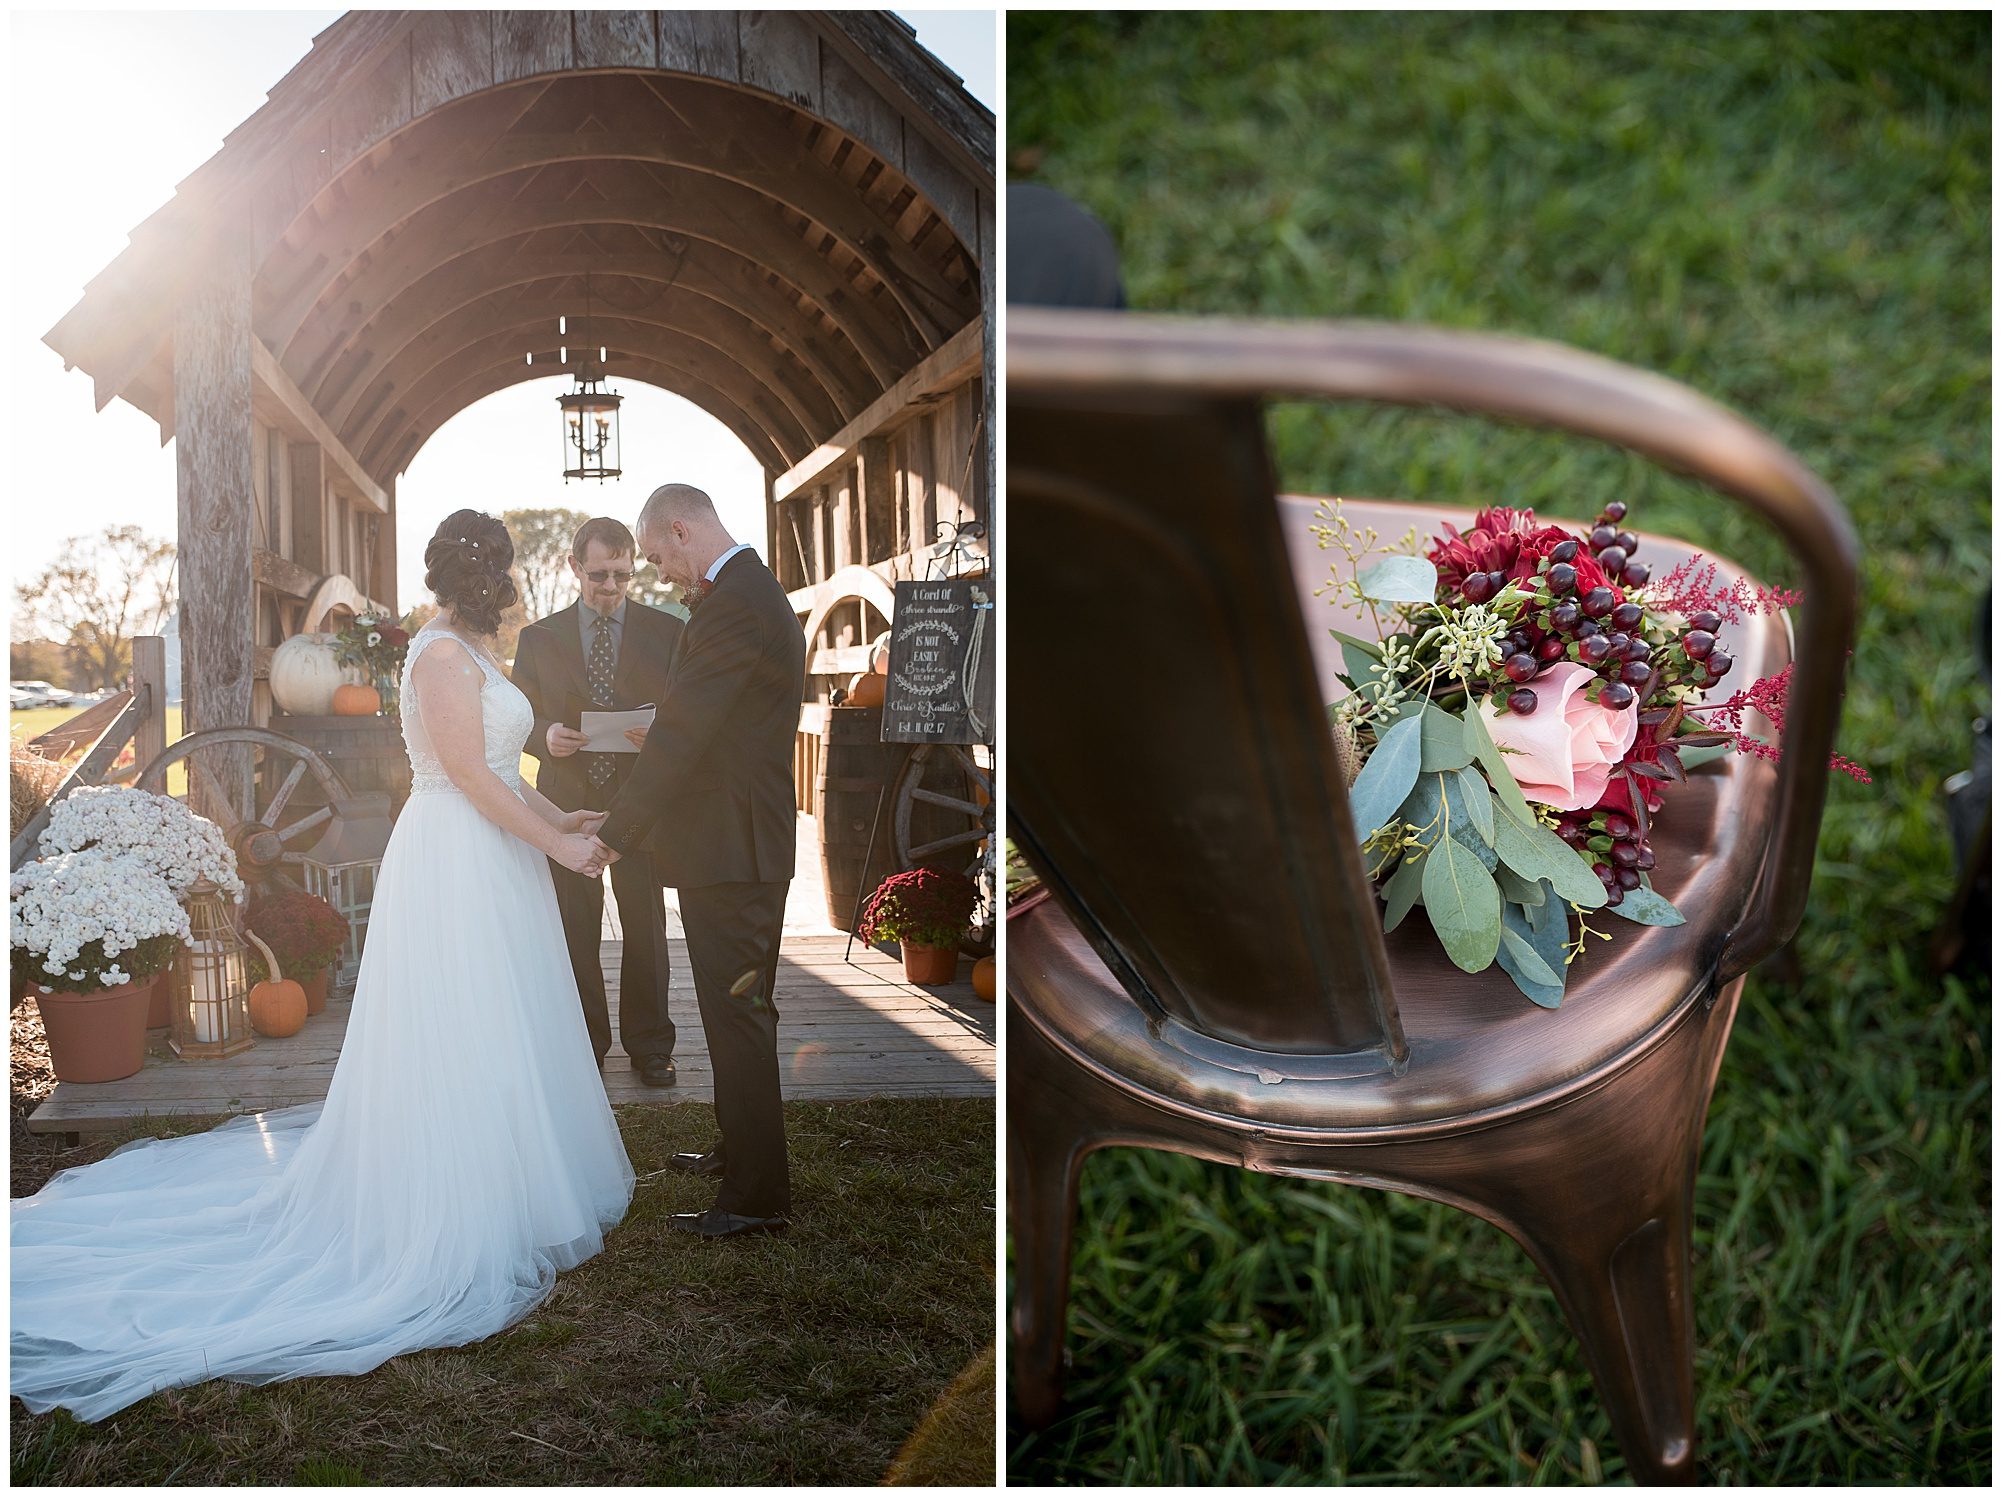 sunlight. prayers. wedding photos outdoors at covered bridge inn in lewes delaware. historic wedding barn venue on the eastern shore. fall wedding in november with rustic decor theme.